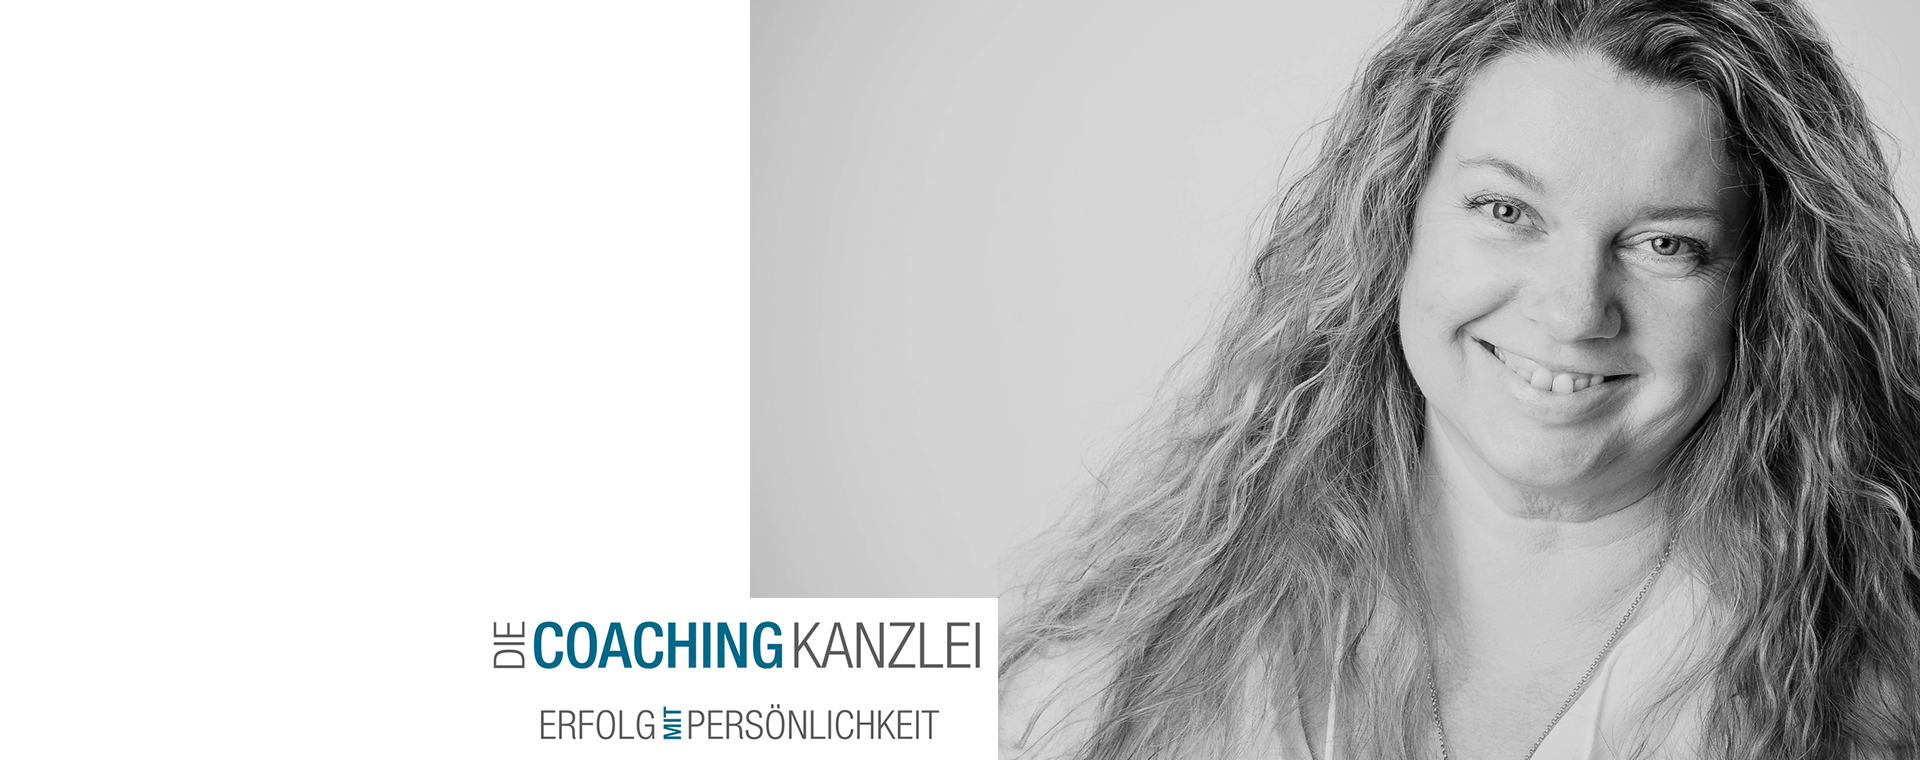 Die Coaching Kanzlei Christina Hollinde